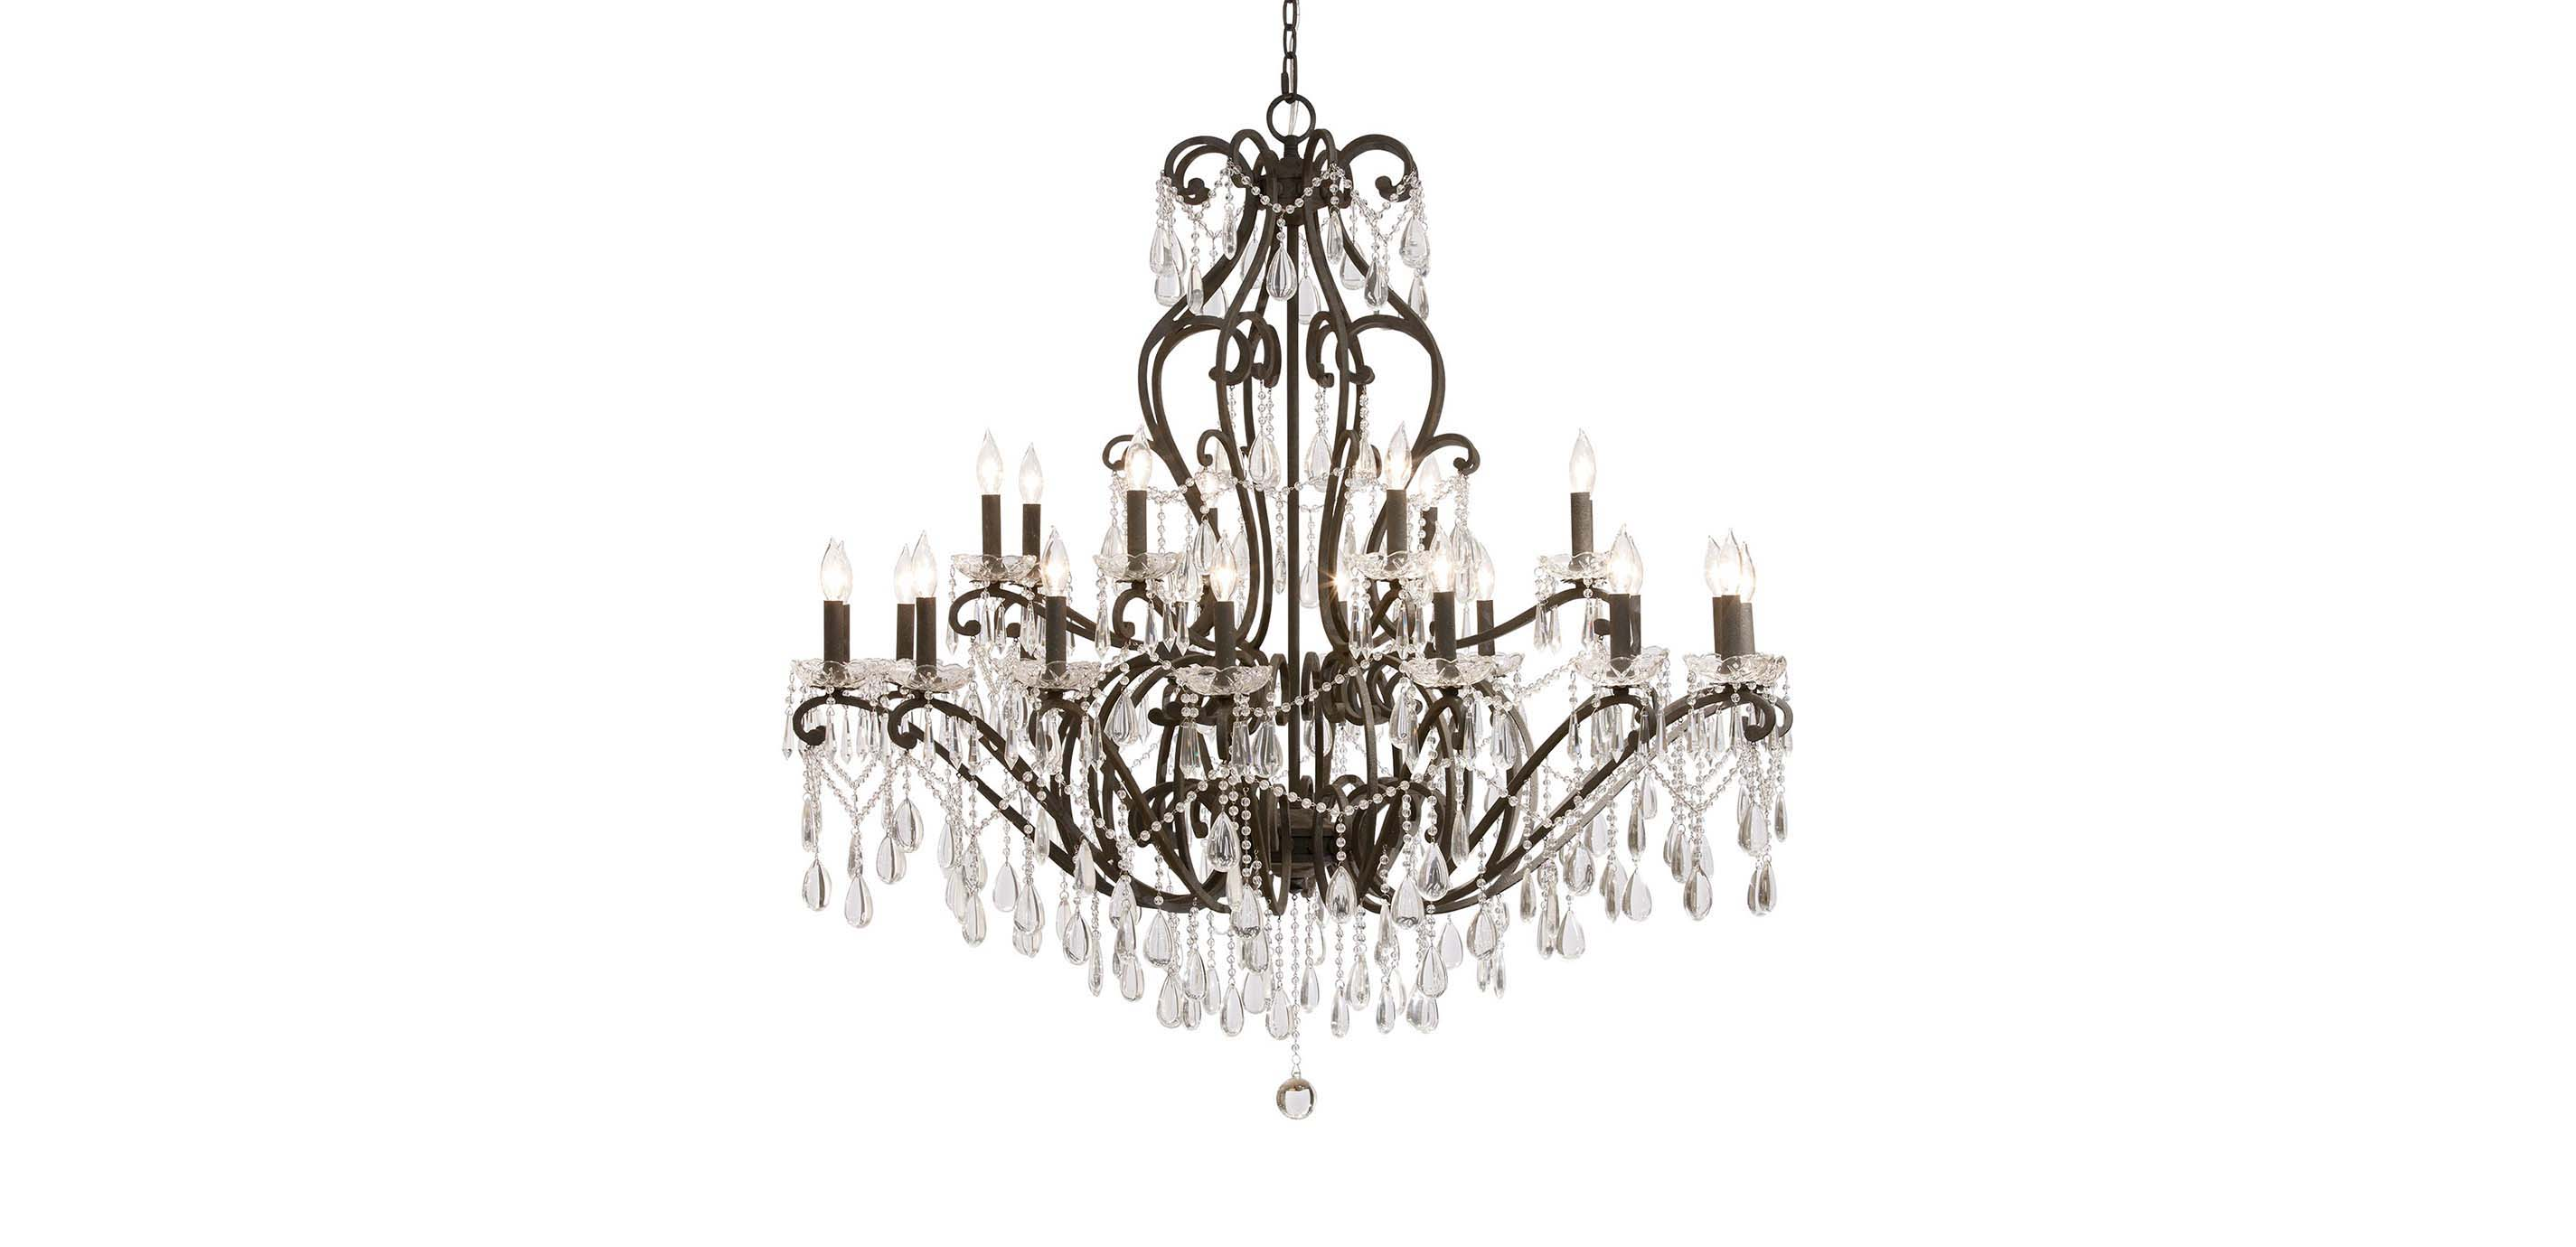 Whitney Slate Grand Chandelier Chandeliers